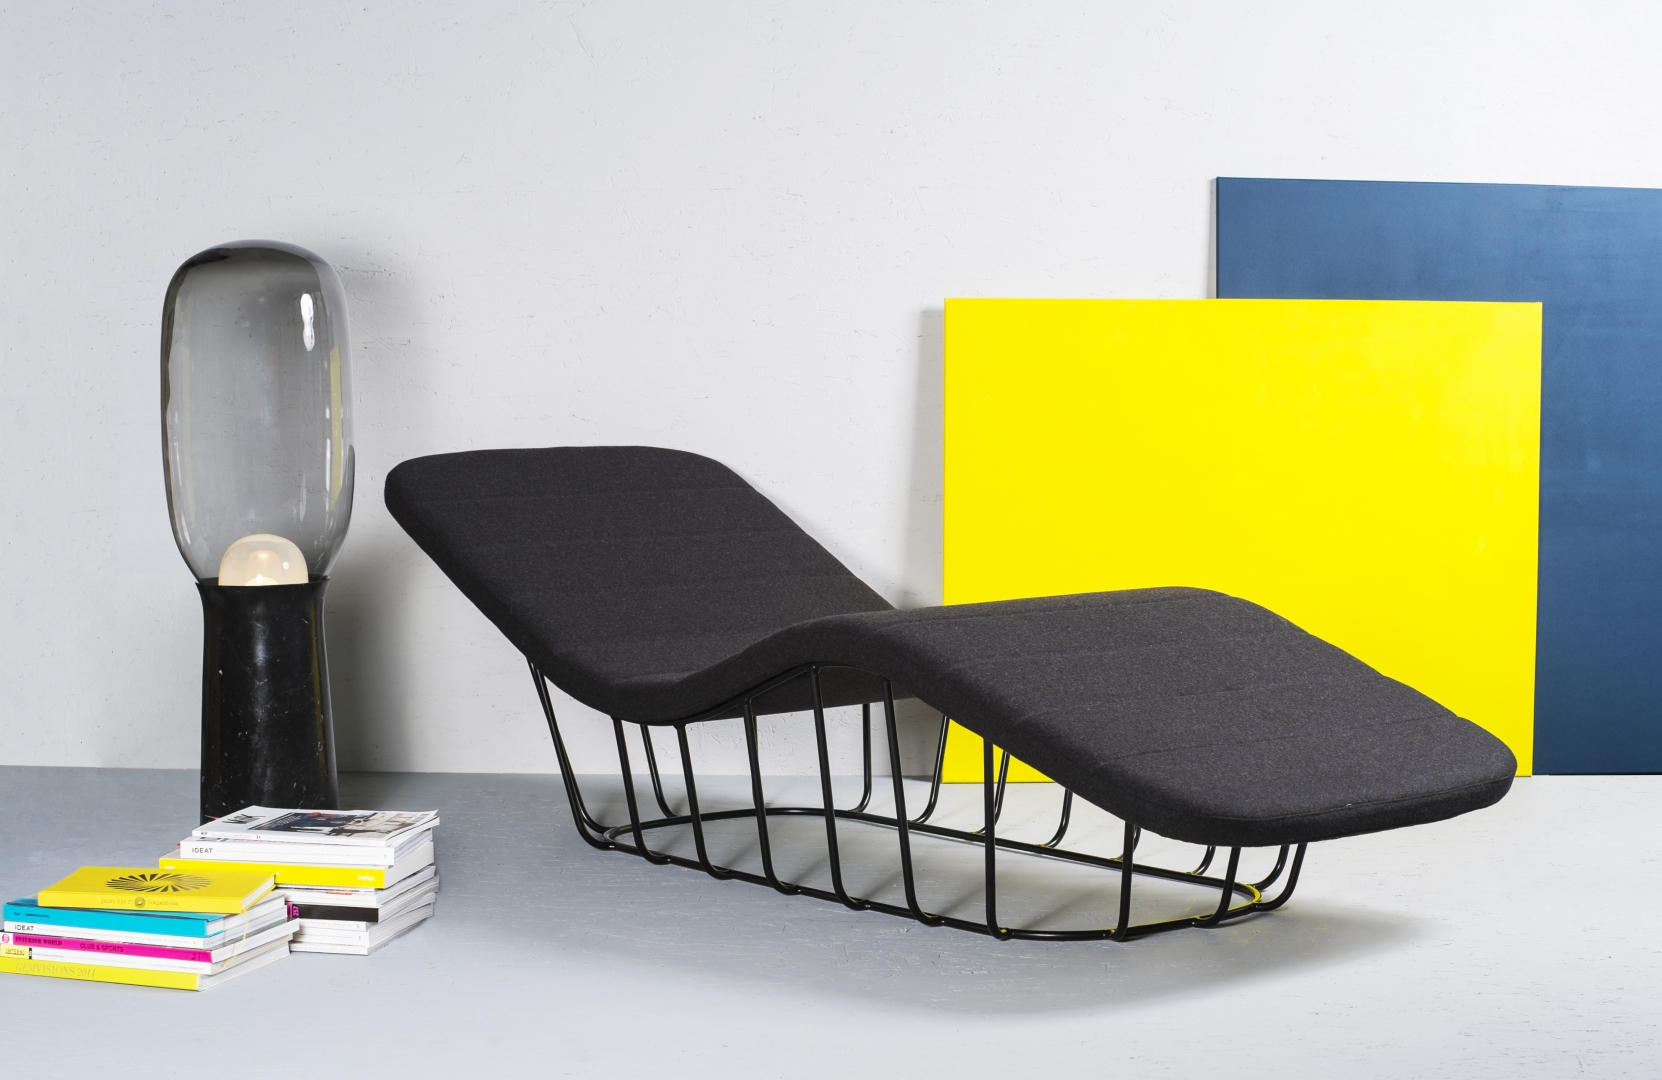 WEIGHTLESS Chaise Longue | WORK | DAN YEFFET DESIGN STUDIO on chaise sofa sleeper, chaise recliner chair, chaise furniture,